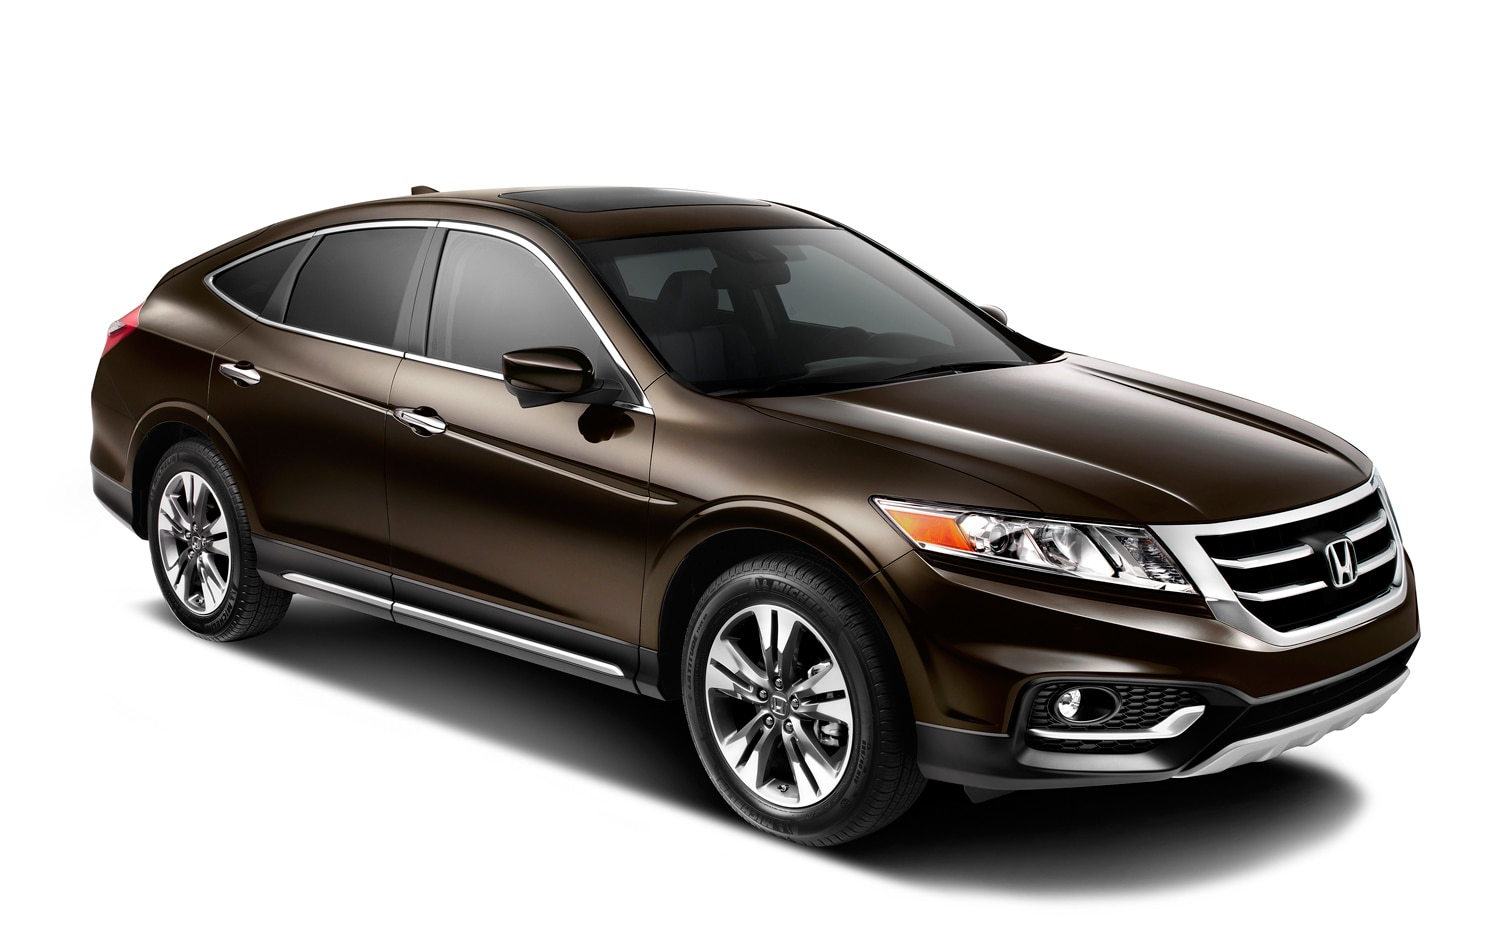 2013 Honda Crosstour Front Three Quarter1